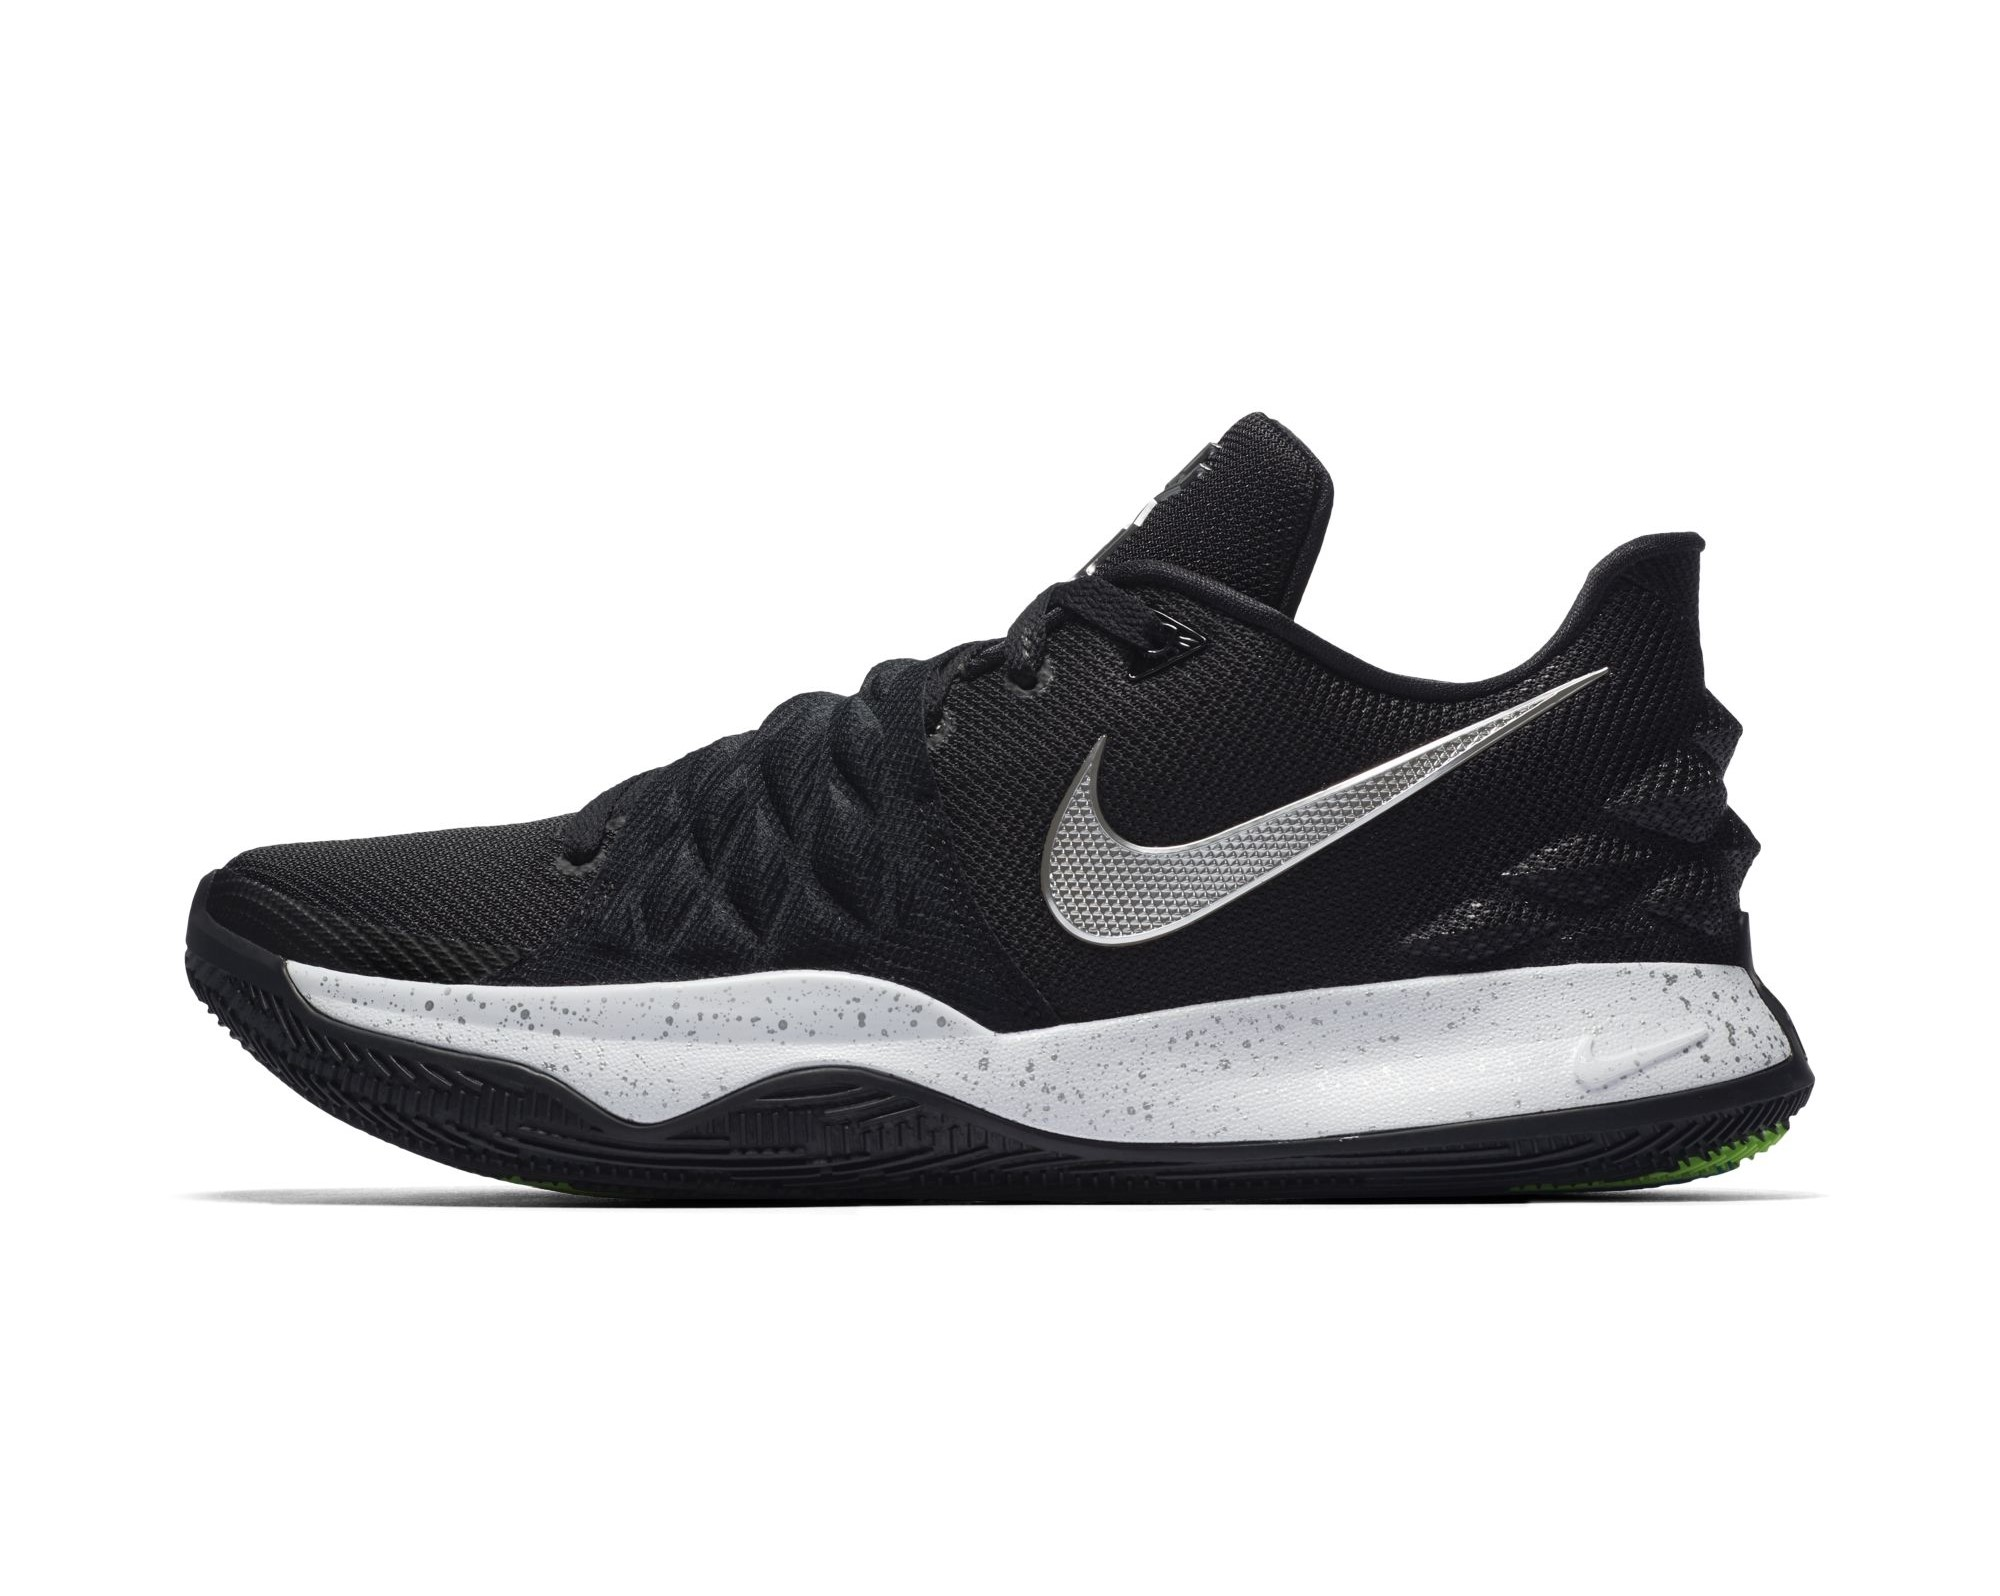 wholesale dealer 4b4d0 11cf0 The Nike Kyrie 4 Low is Clean in Black and White - WearTesters